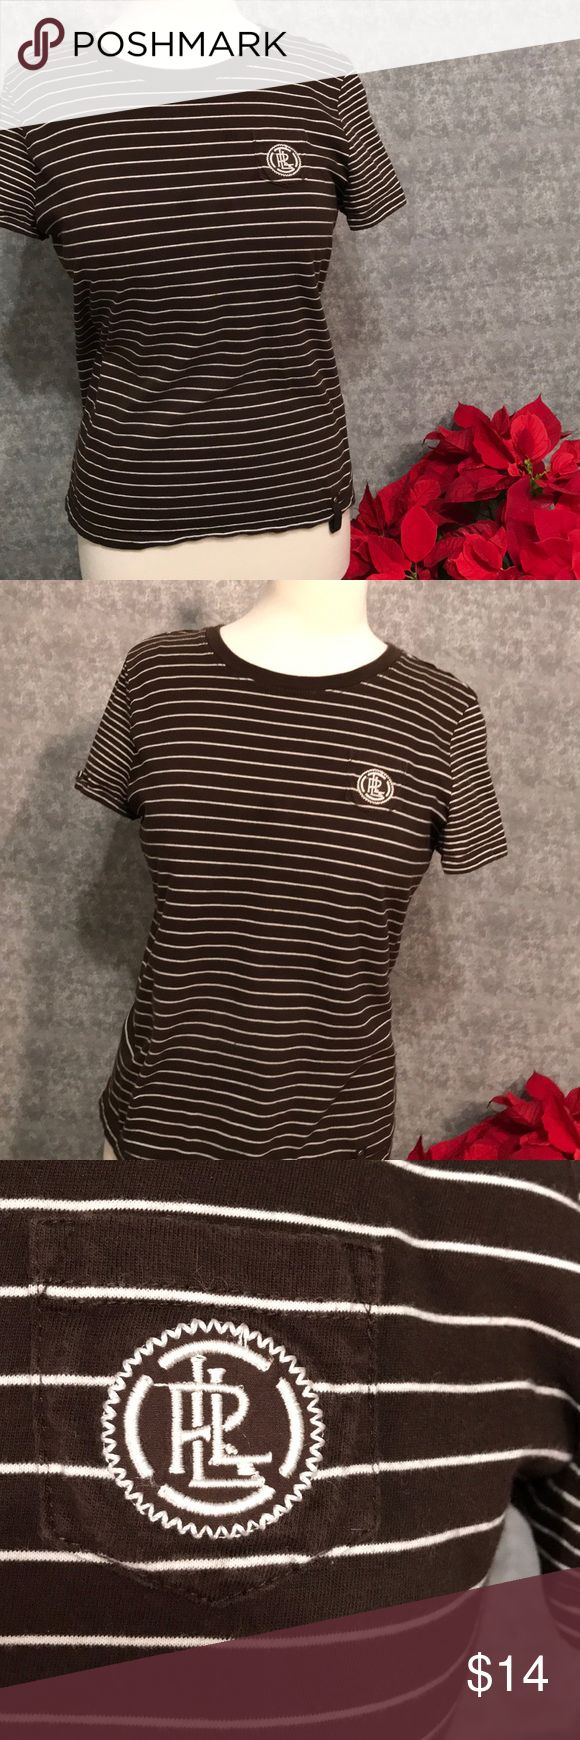 Lauren Active Tee w/ Chest Pocket  M Sporty active short sleeved tee in very good condition.  Neutral colors match with most. Brown/Tan/Olive hues topped with adorable mini-pocket with logo.  See close up if snap loop at the hem.  Blends in yet stands out at the same time. Lauren Ralph Lauren Tops Tees - Short Sleeve